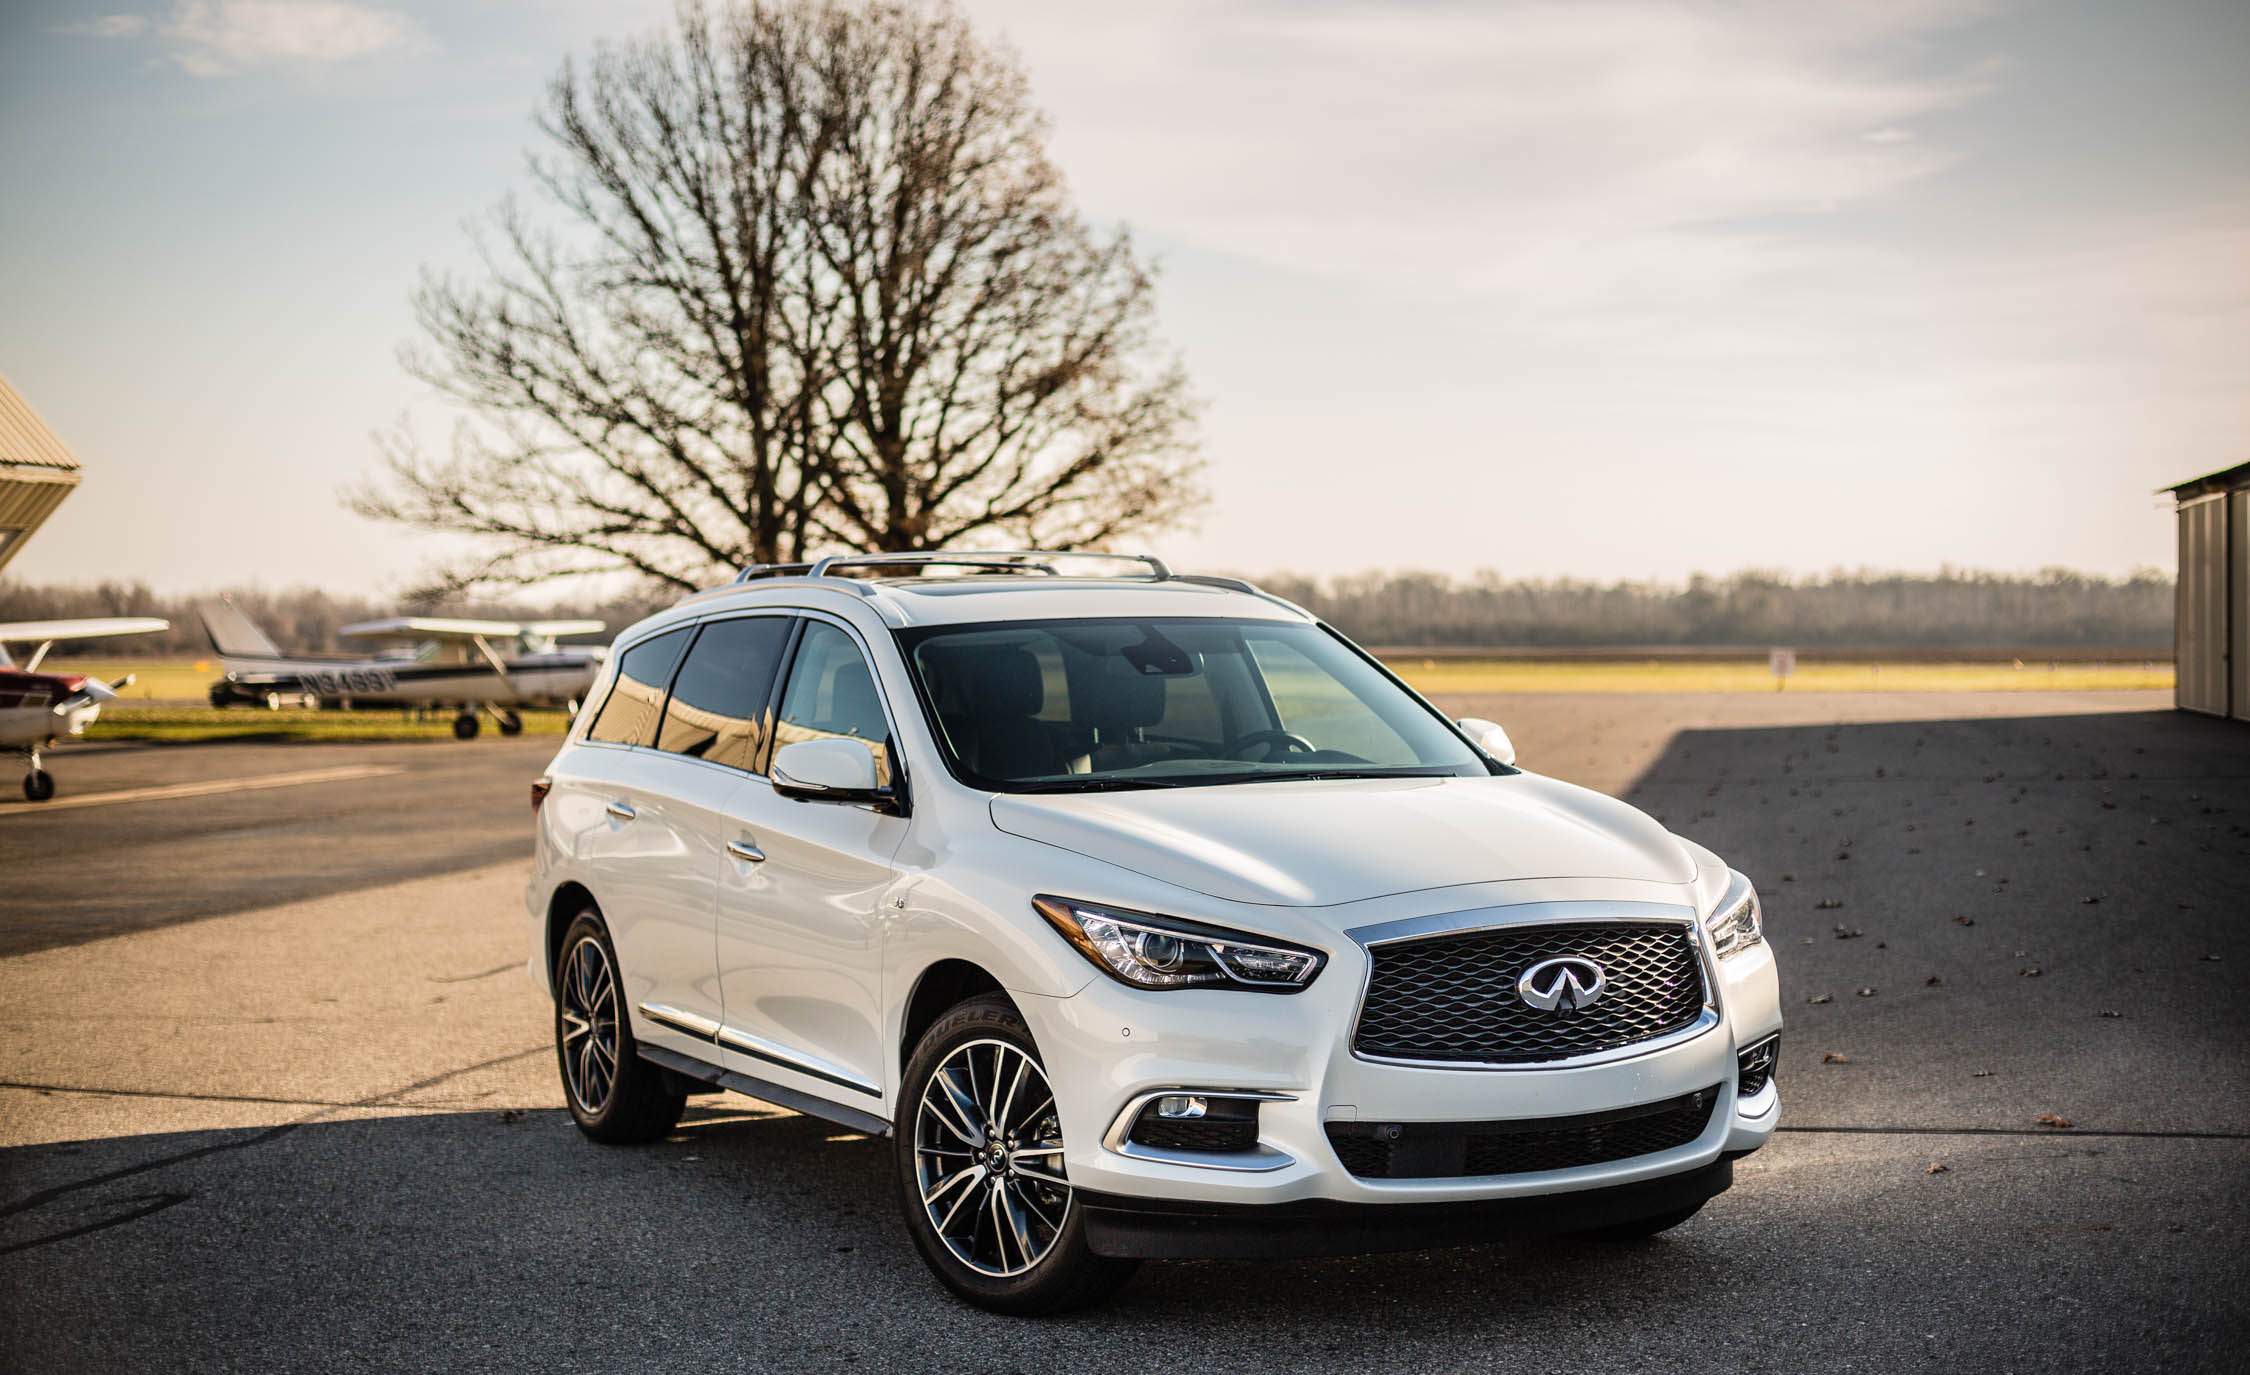 2017 Infiniti Qx60 White (Photo 5 of 12)